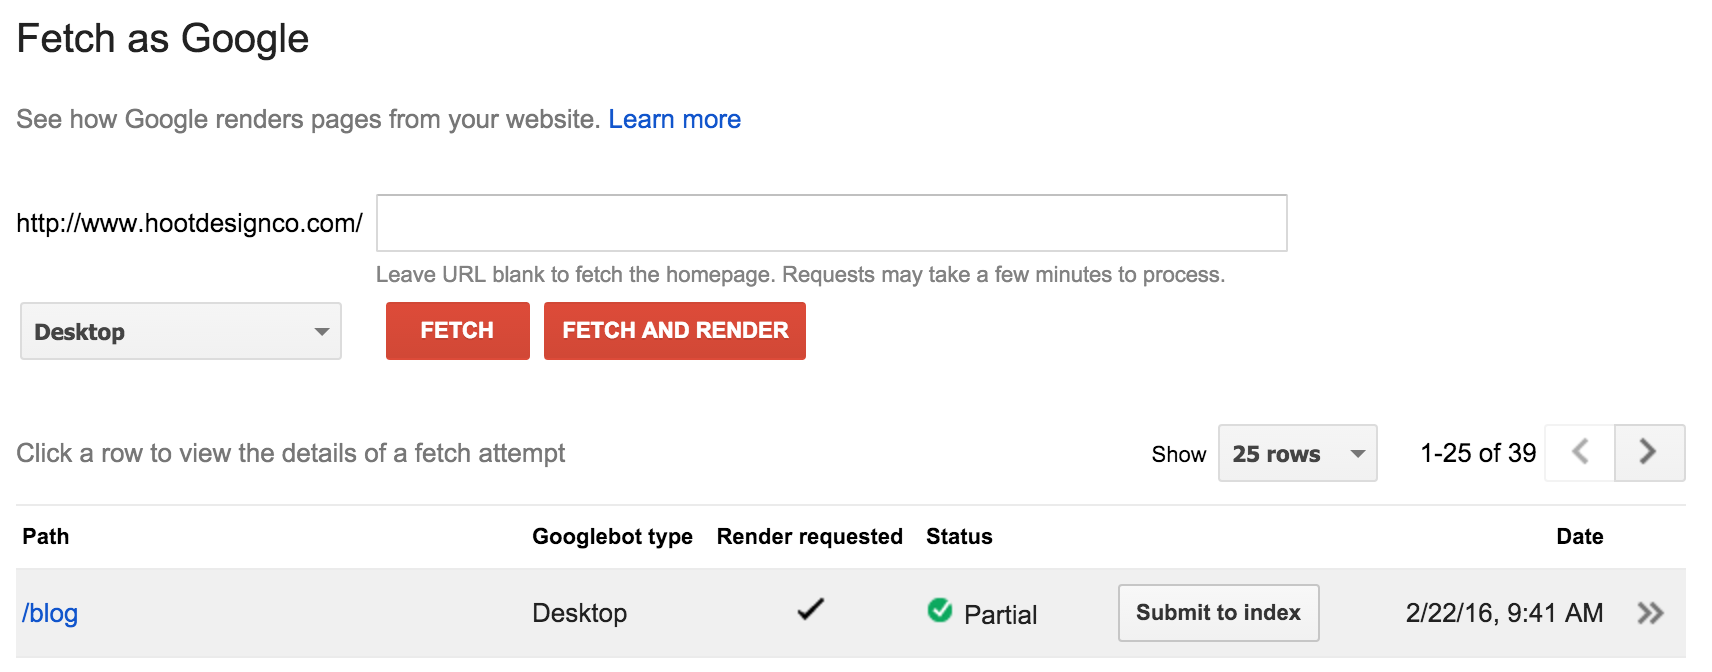 """Choose """"Submit to Index"""" to index your site updates."""